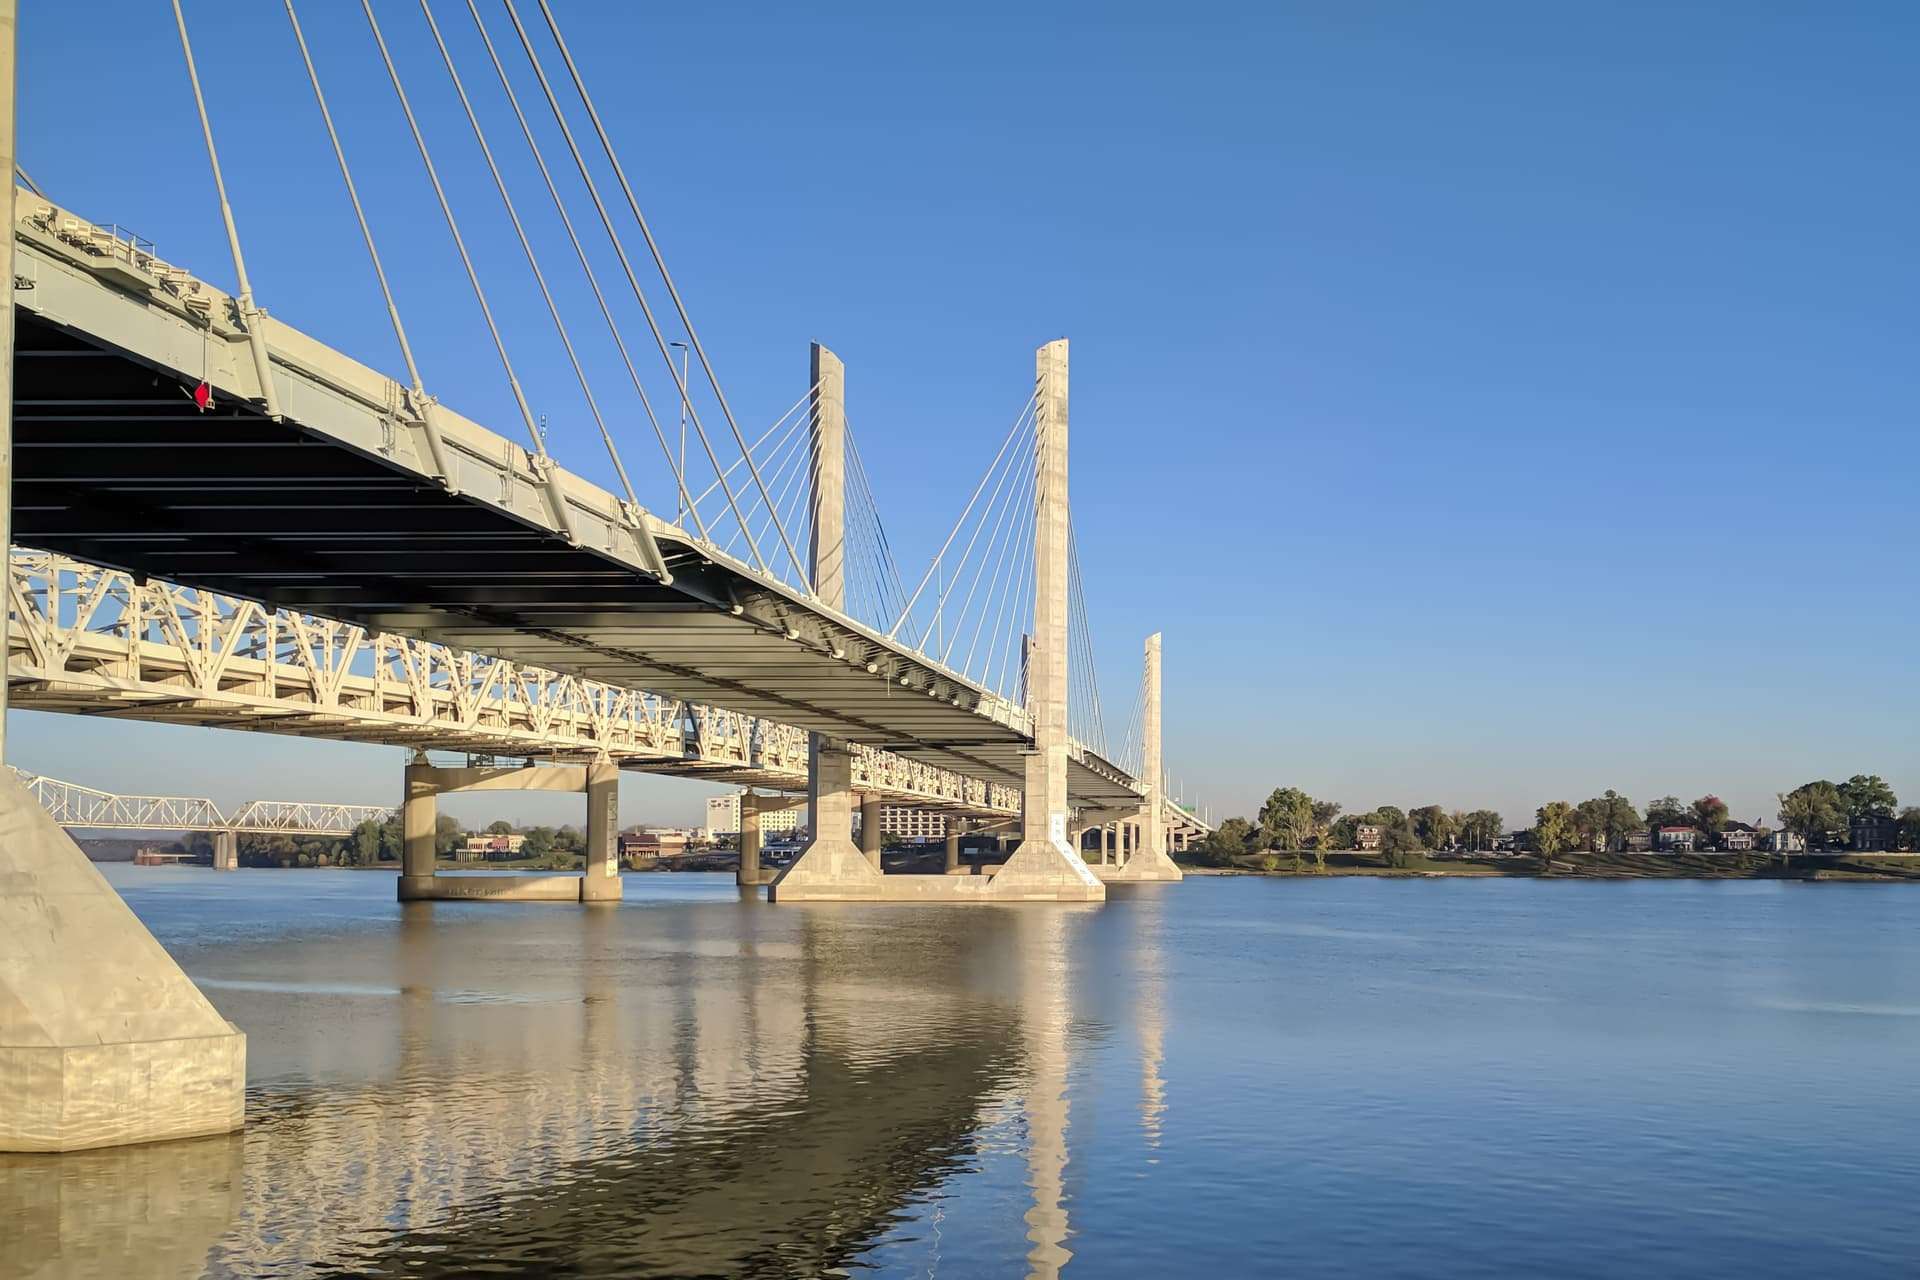 A photograph of a brutalist suspension bridge of white steel and concrete pylons crossing the Ohio River.